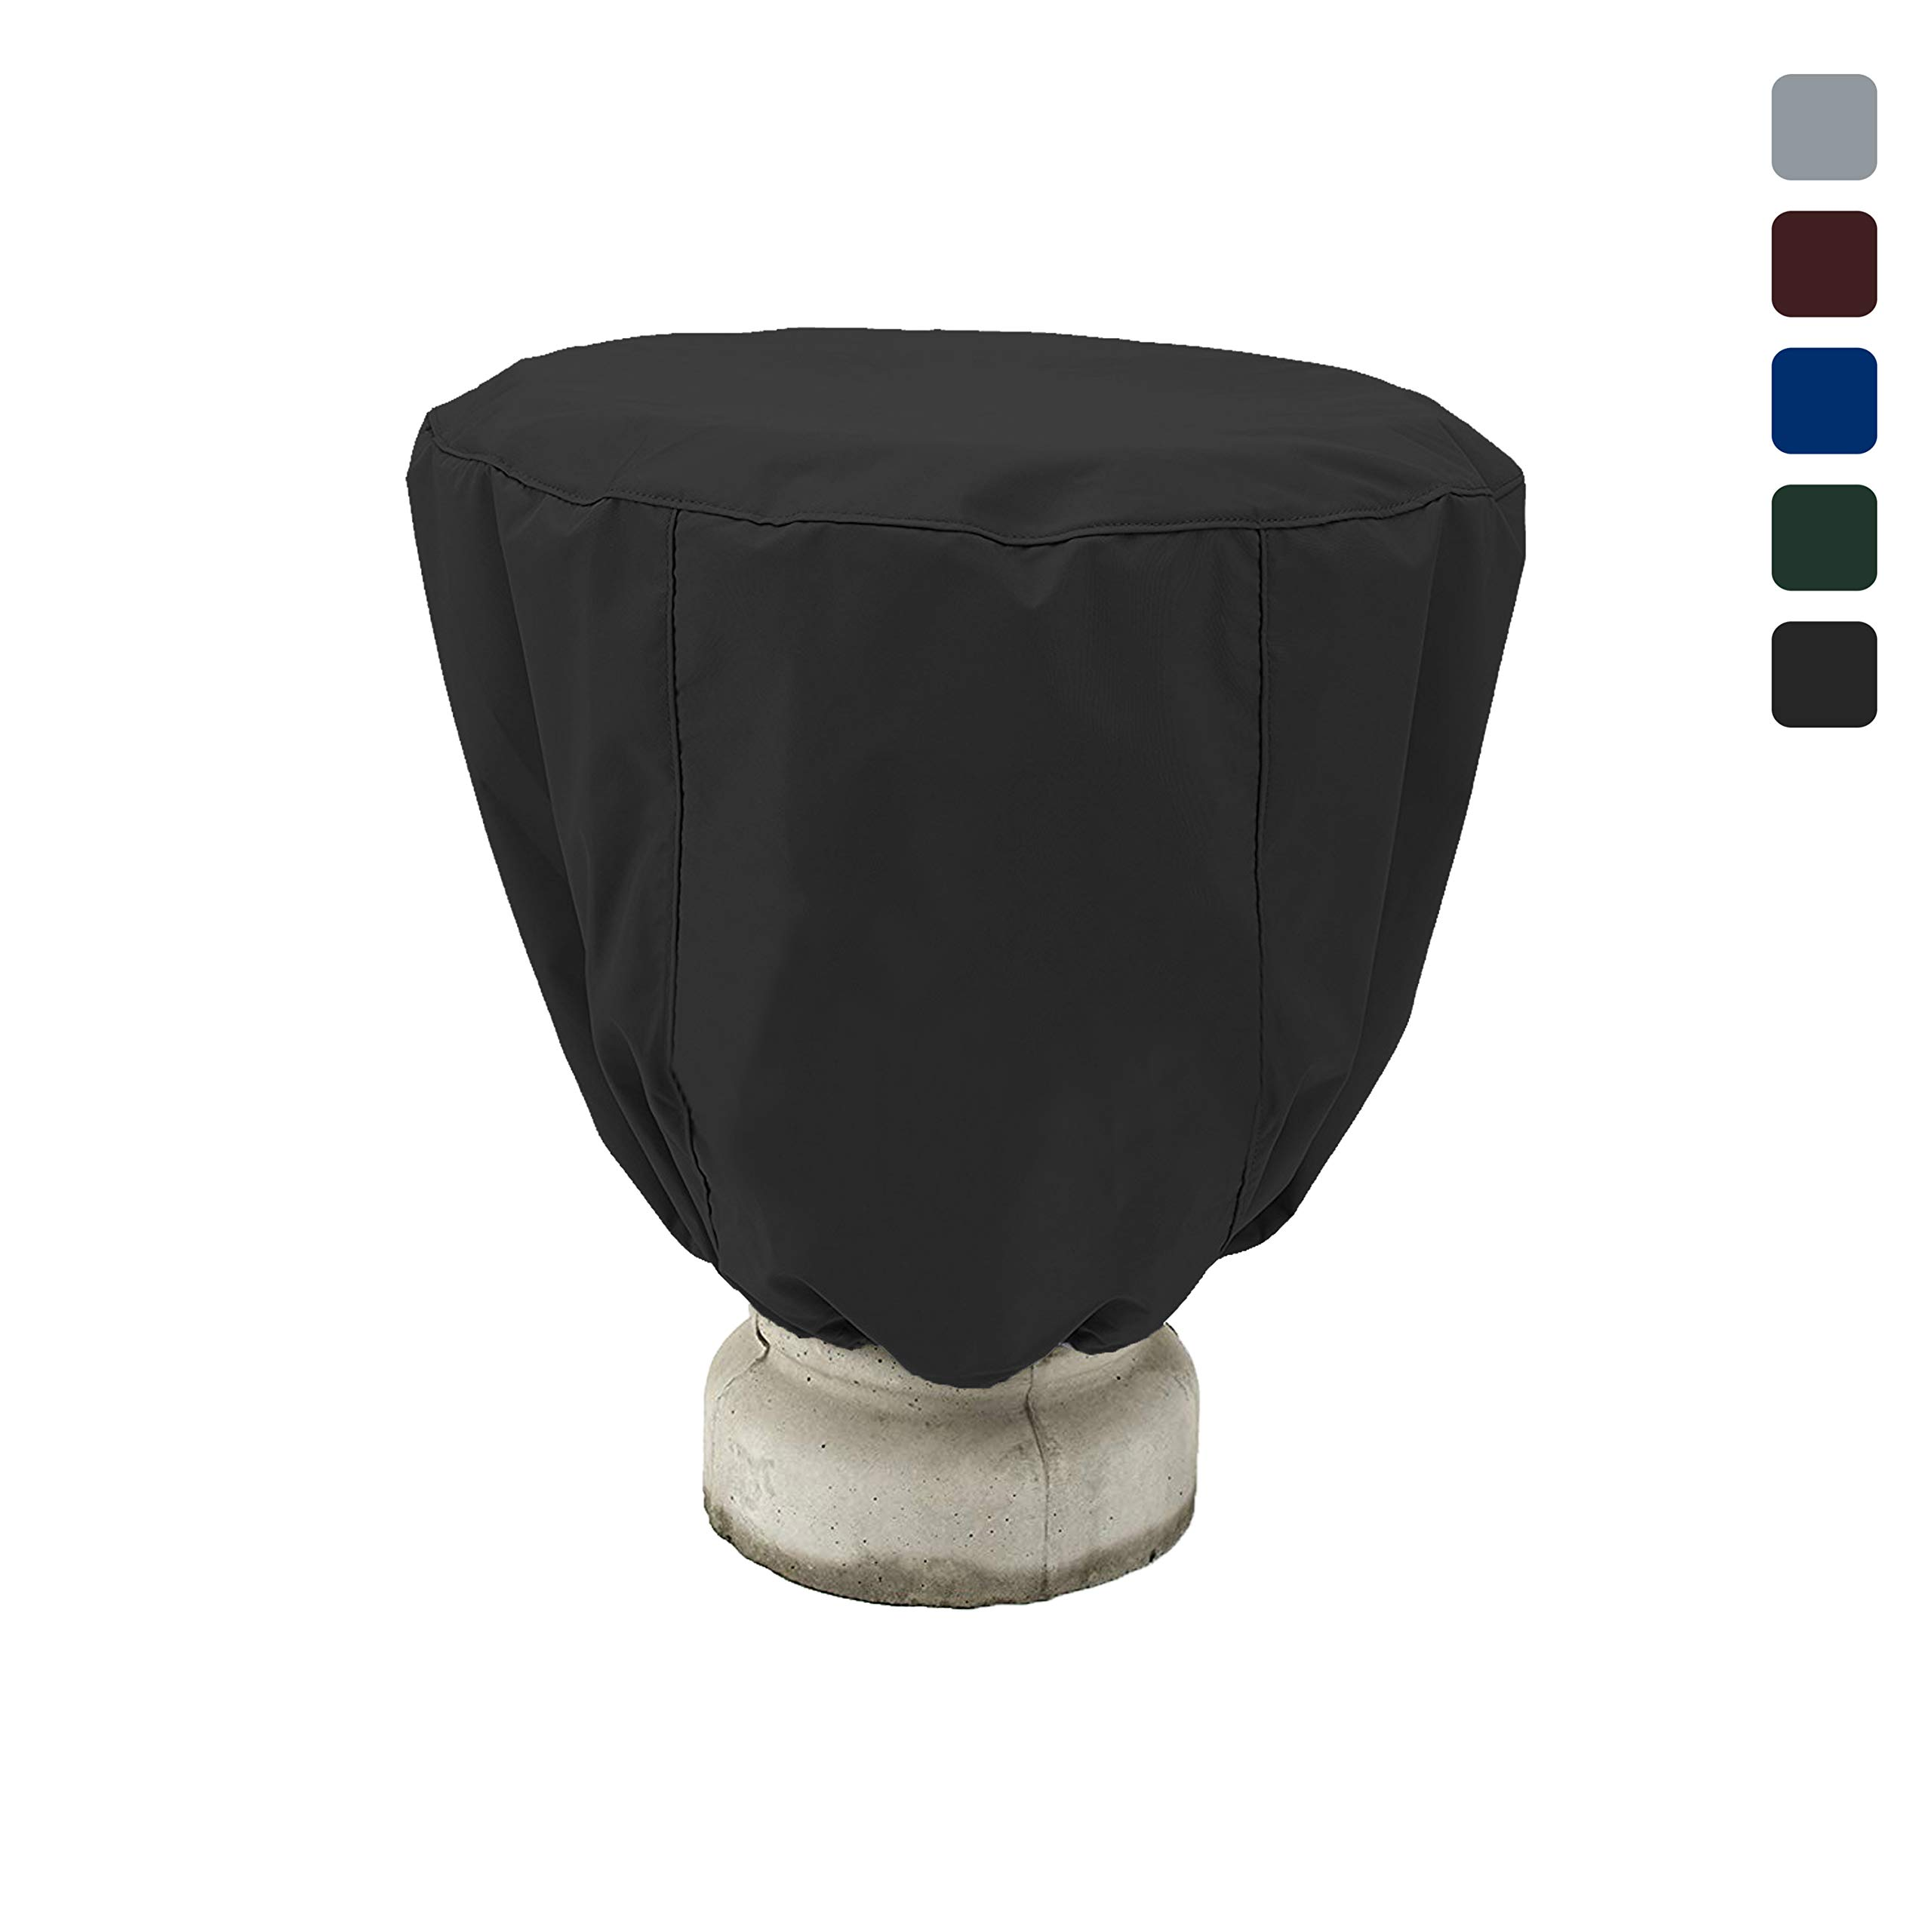 COVERS & ALL Bird Bath Cover 18 Oz Waterproof - Customize Cover with Any Size - 100% UV Weather Resistant Outdoor Cover with Elastic and Drawstring for Snug Fit (32'' Dia x 24'' H, Black)